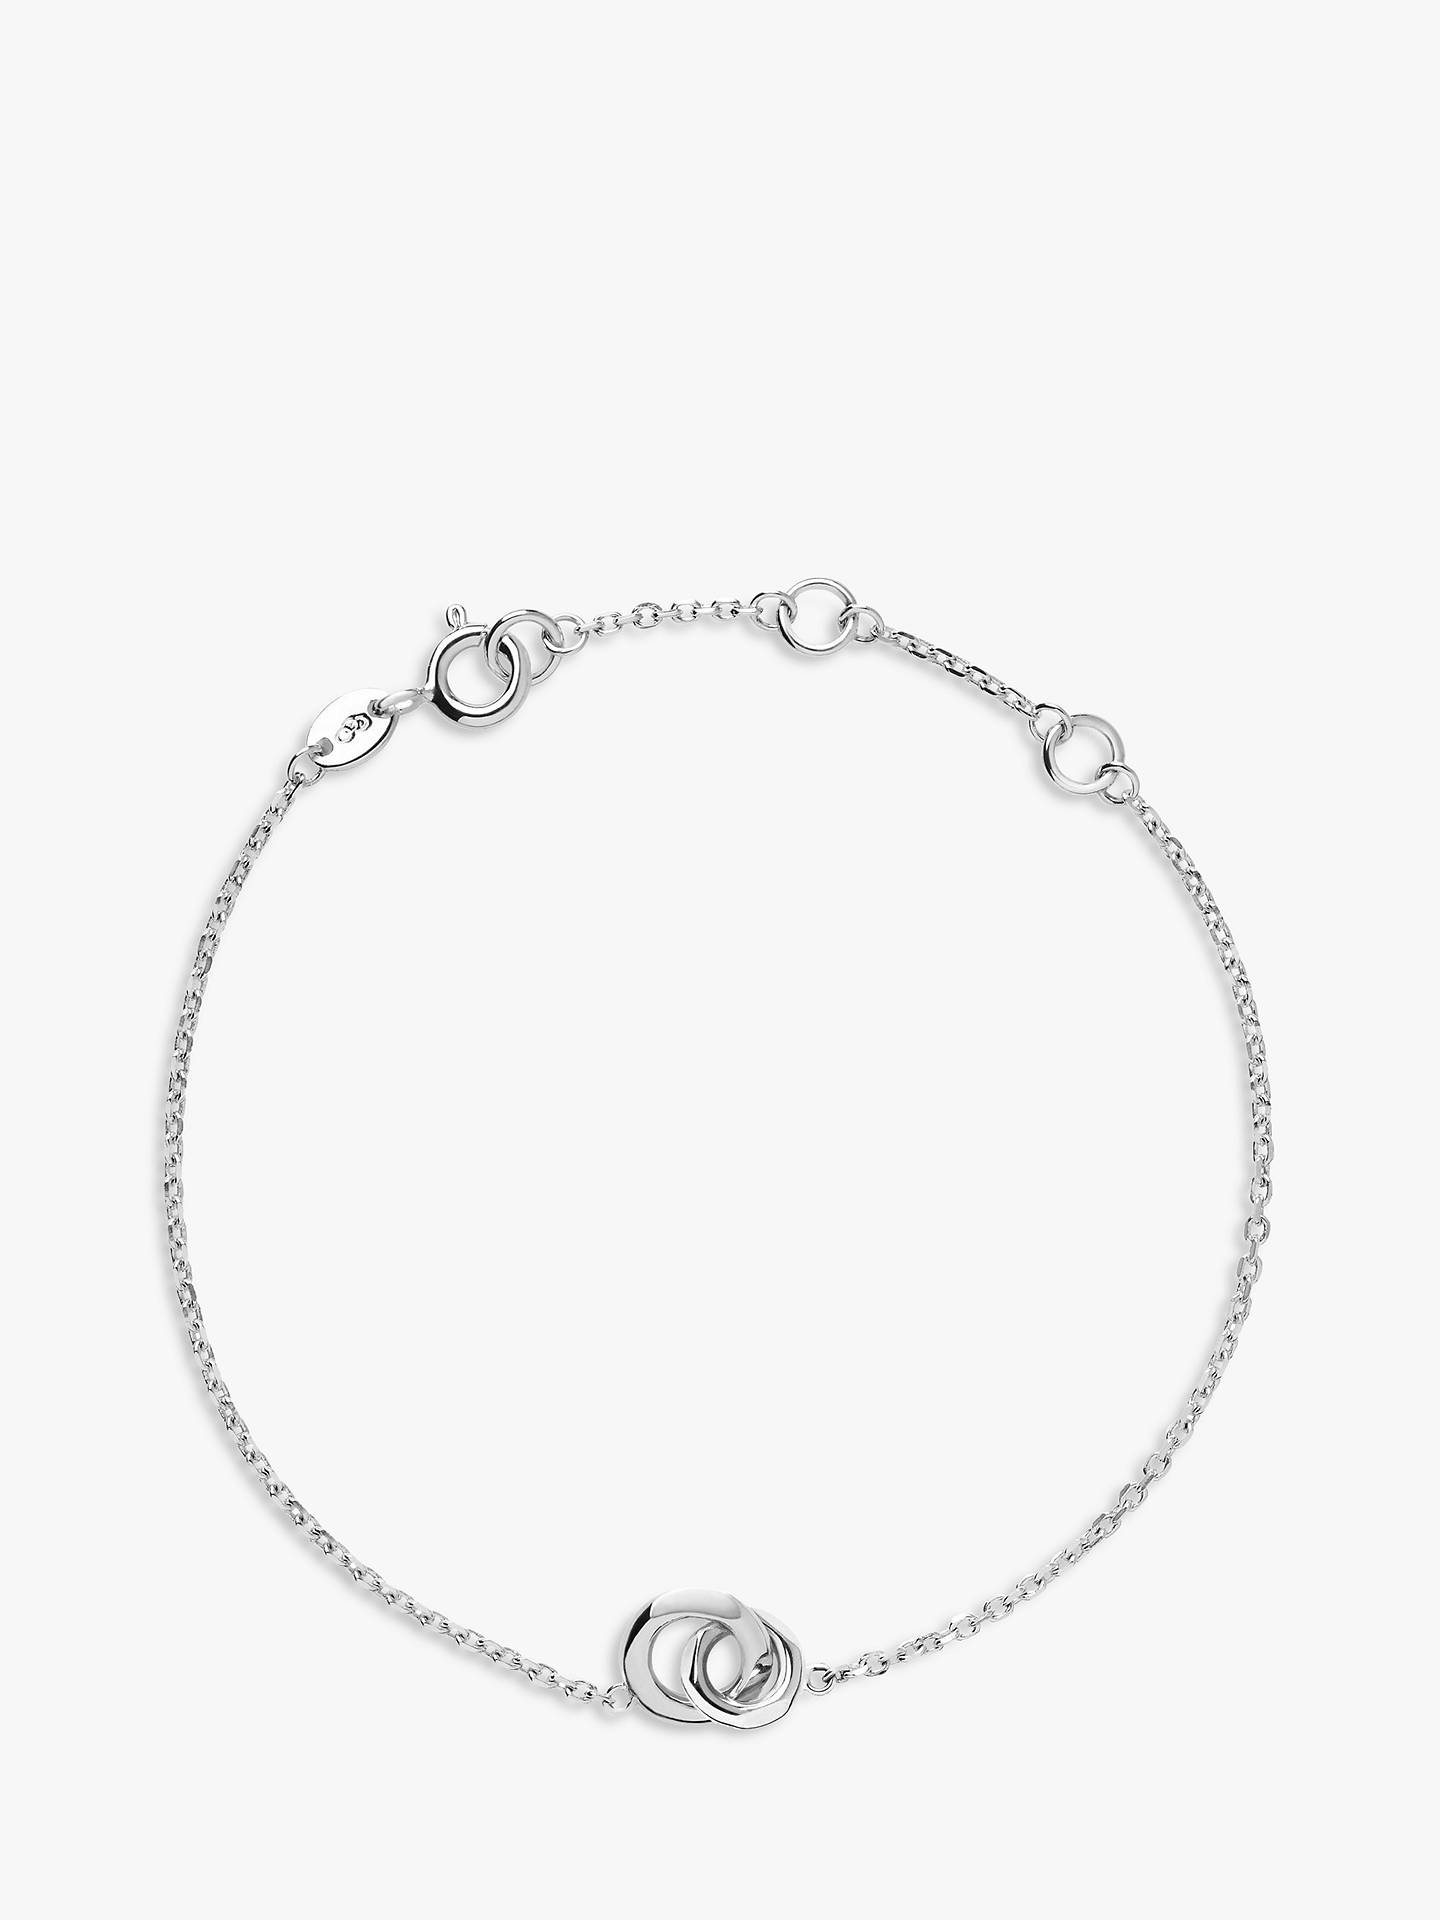 BuyLinks of London 20/20 Sterling Silver Mini Bracelet, Silver Online at johnlewis.com